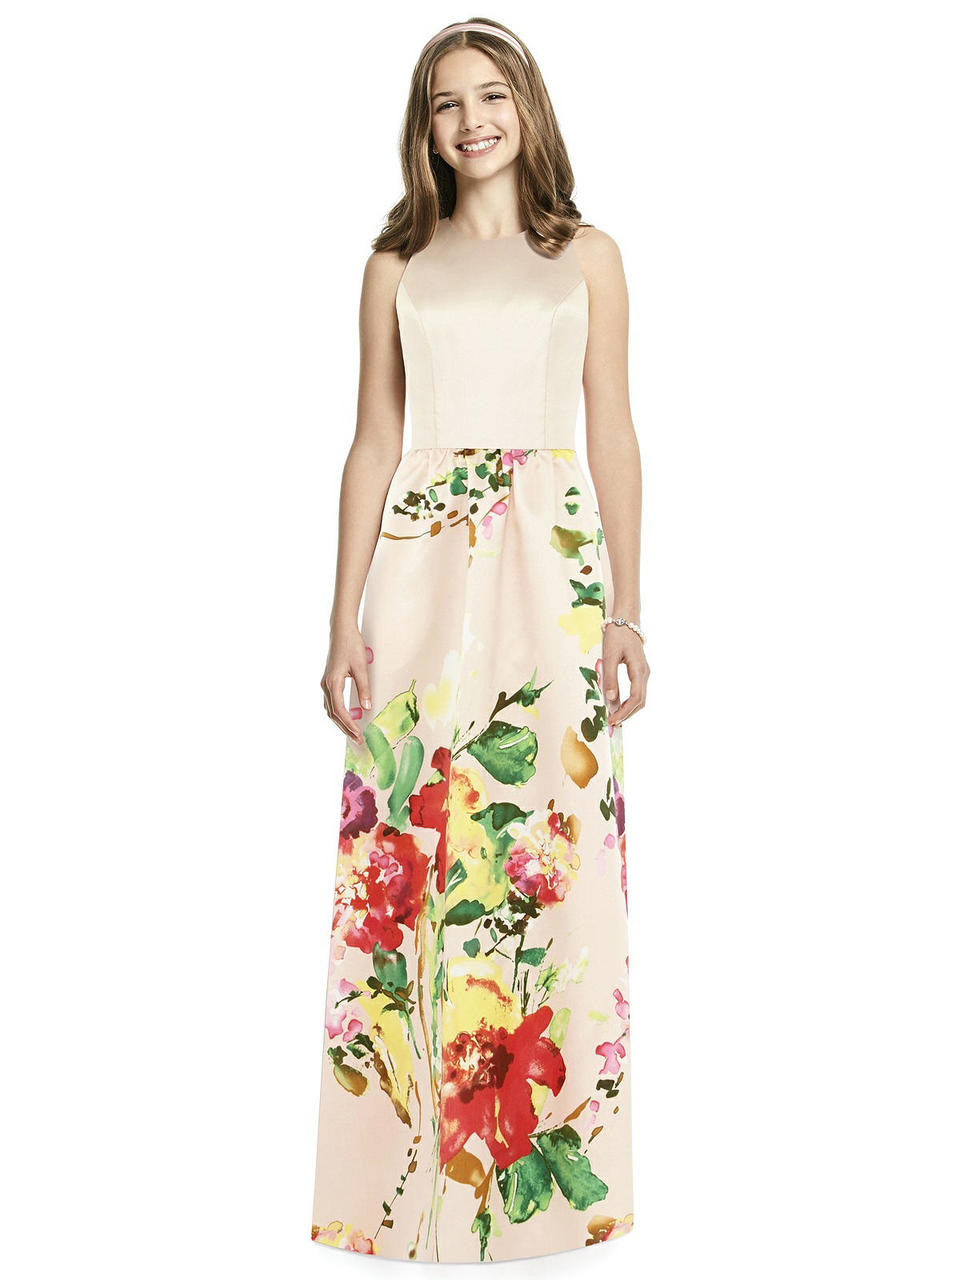 Junior version of style D707CP. Full length sleeveless sateen twill dress with jewel neck and keyhole back. This style available with a blush bodice and blush bouquet skirt or white bodice and white bouquet skirt. Pockets at side seams of shirred skirt.